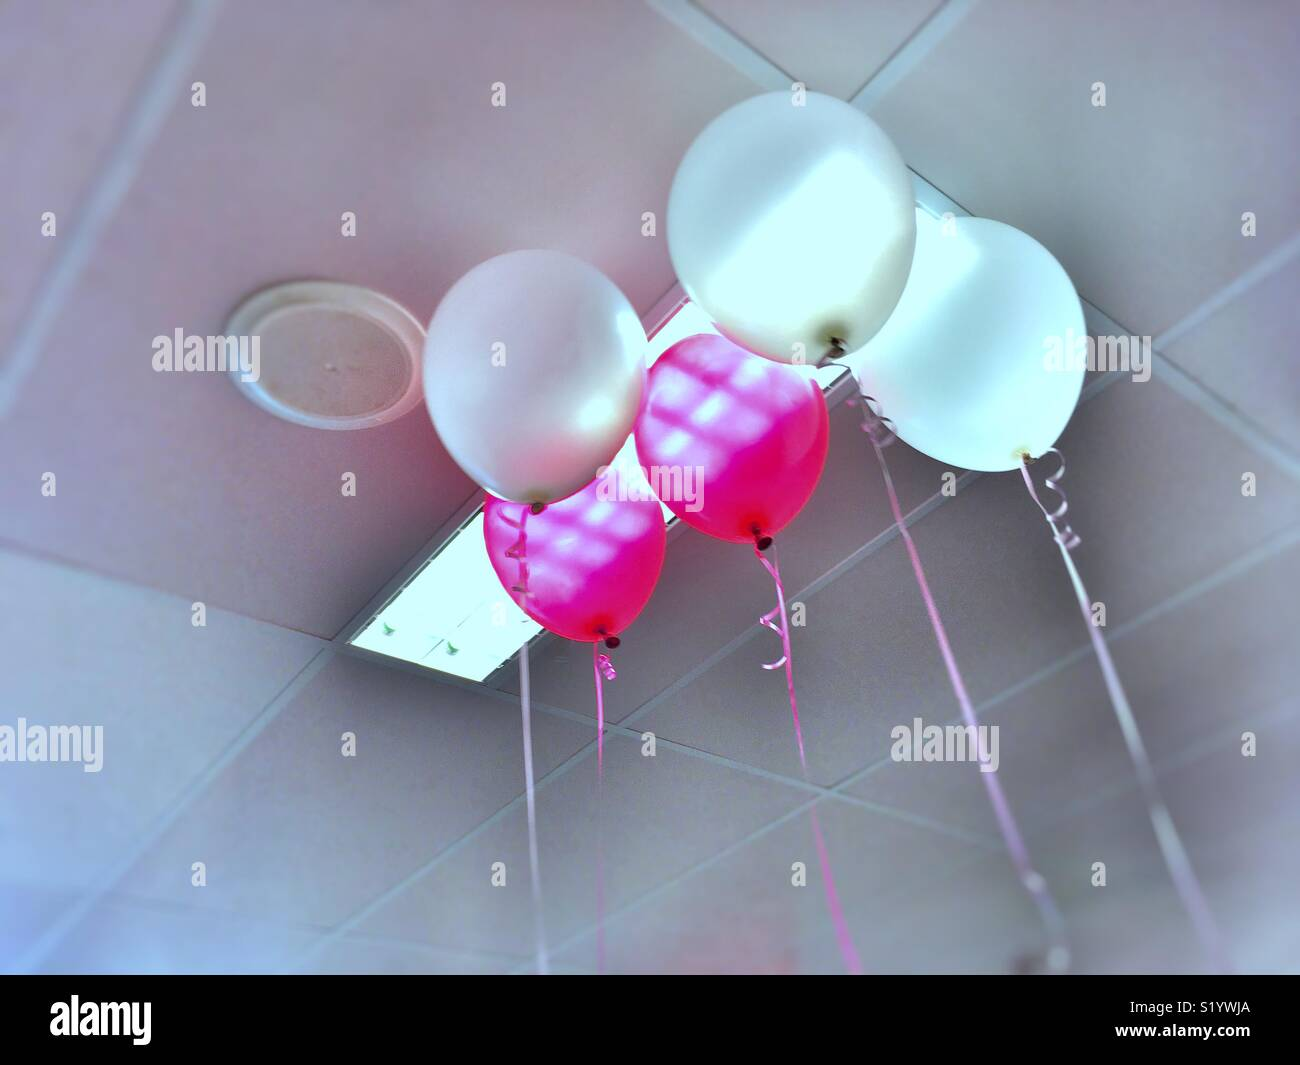 Helium balloons after the party. - Stock Image